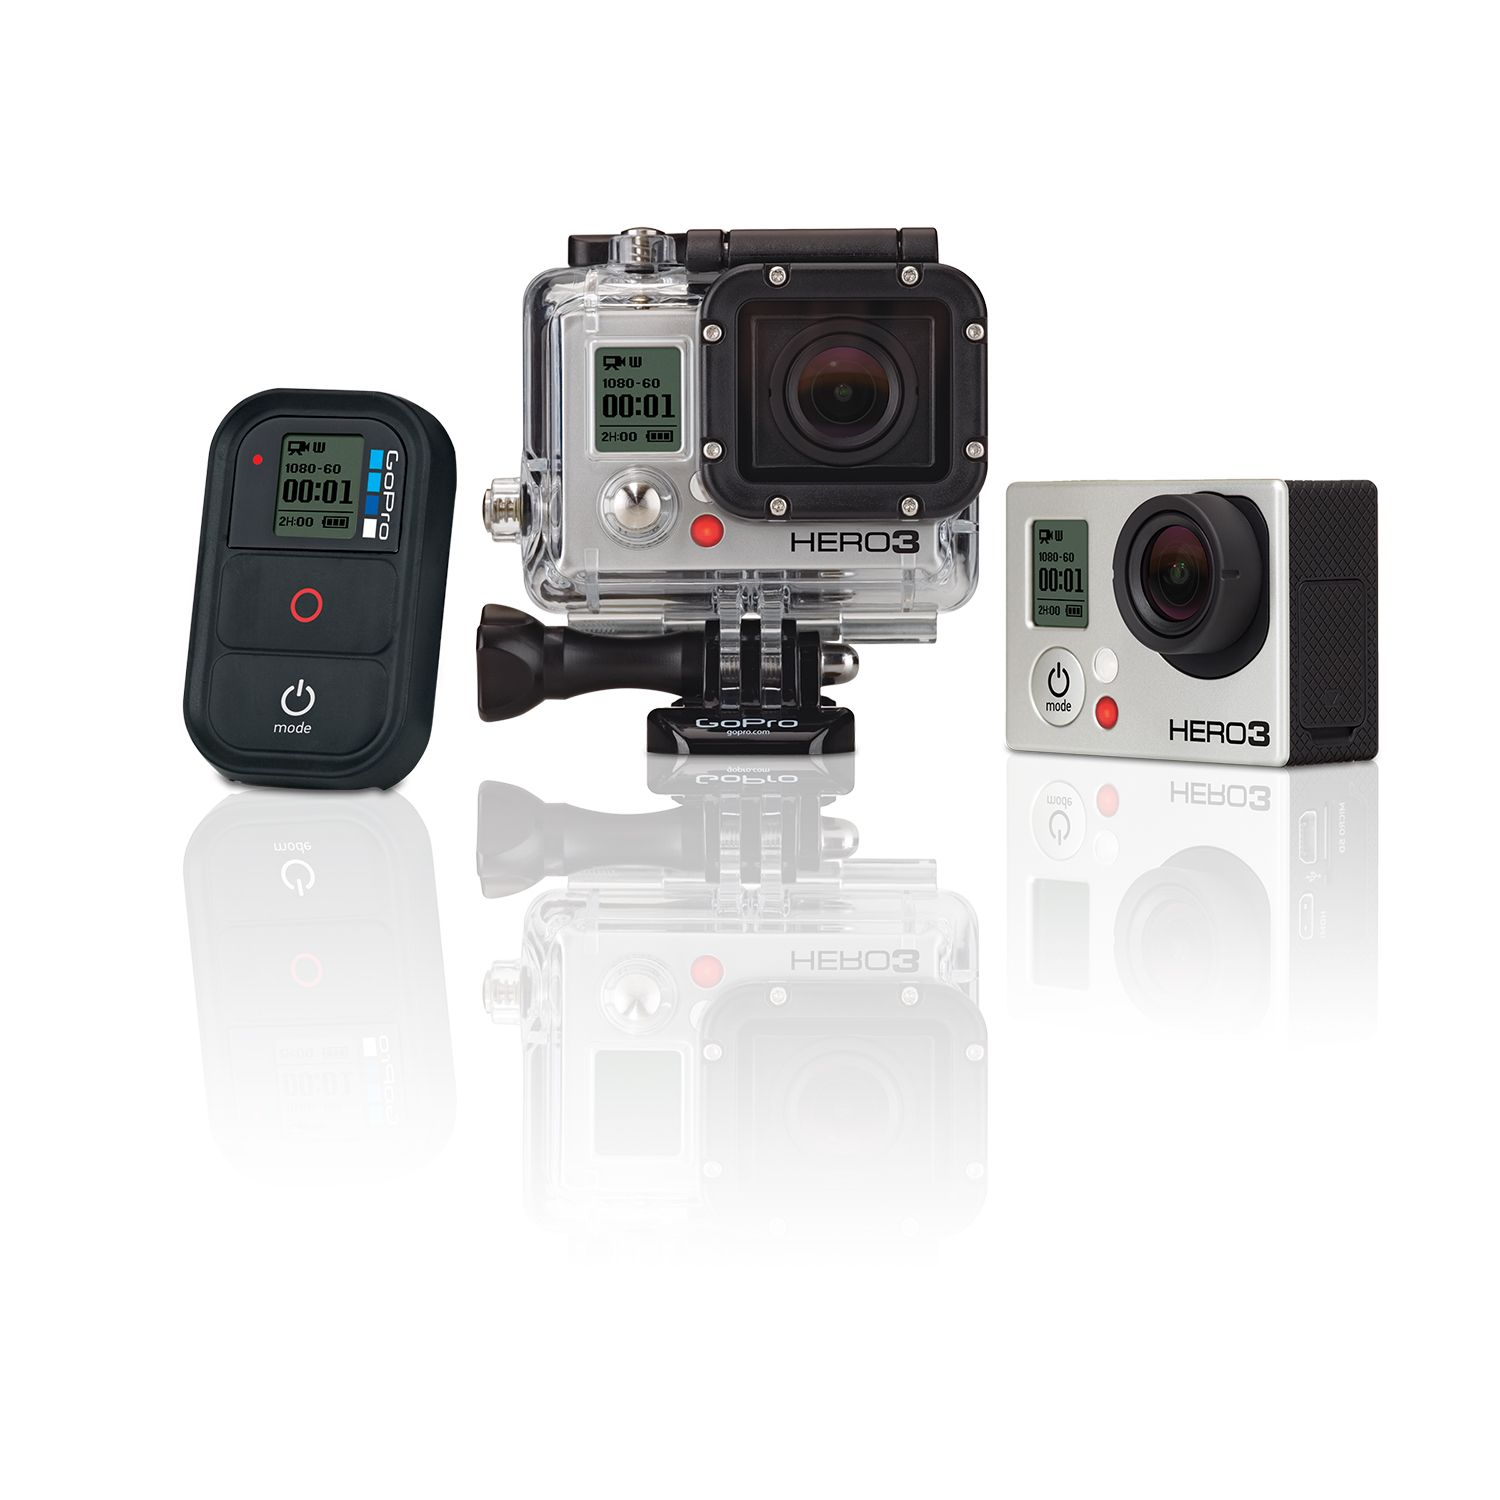 HERO3 Black Edition | Wi-Fi enabled | Most Advanced HD GoPro Ever $399.99